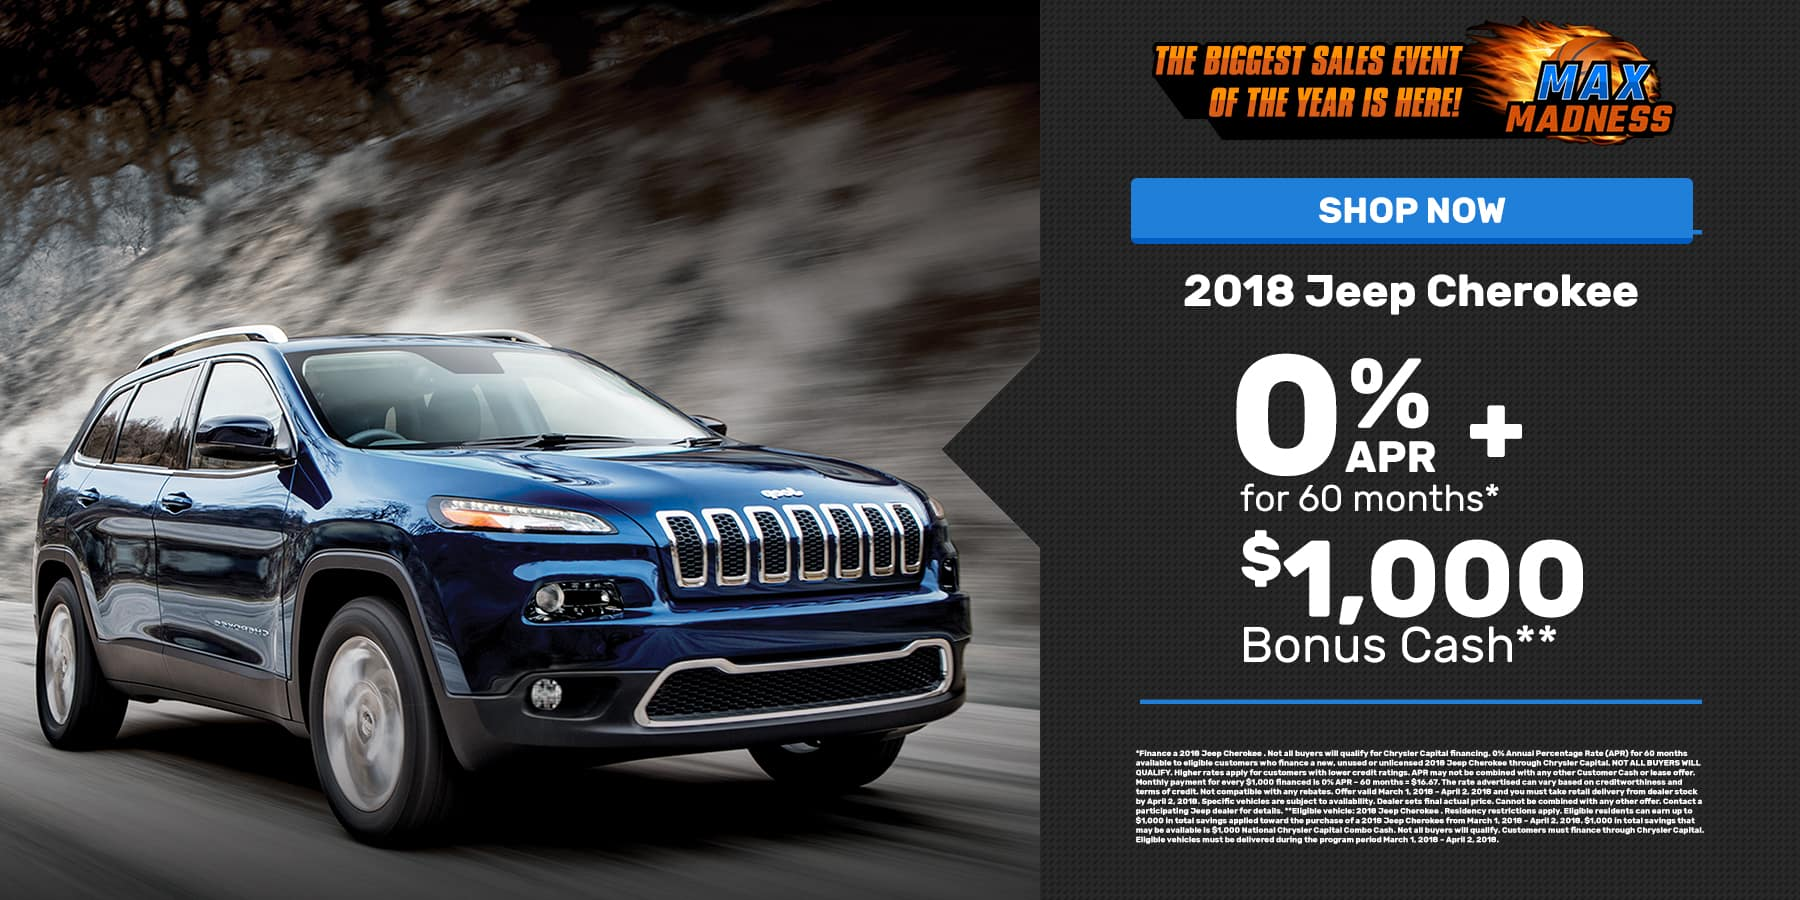 Mar. 2018 Jeep Cherokee Offer Slide